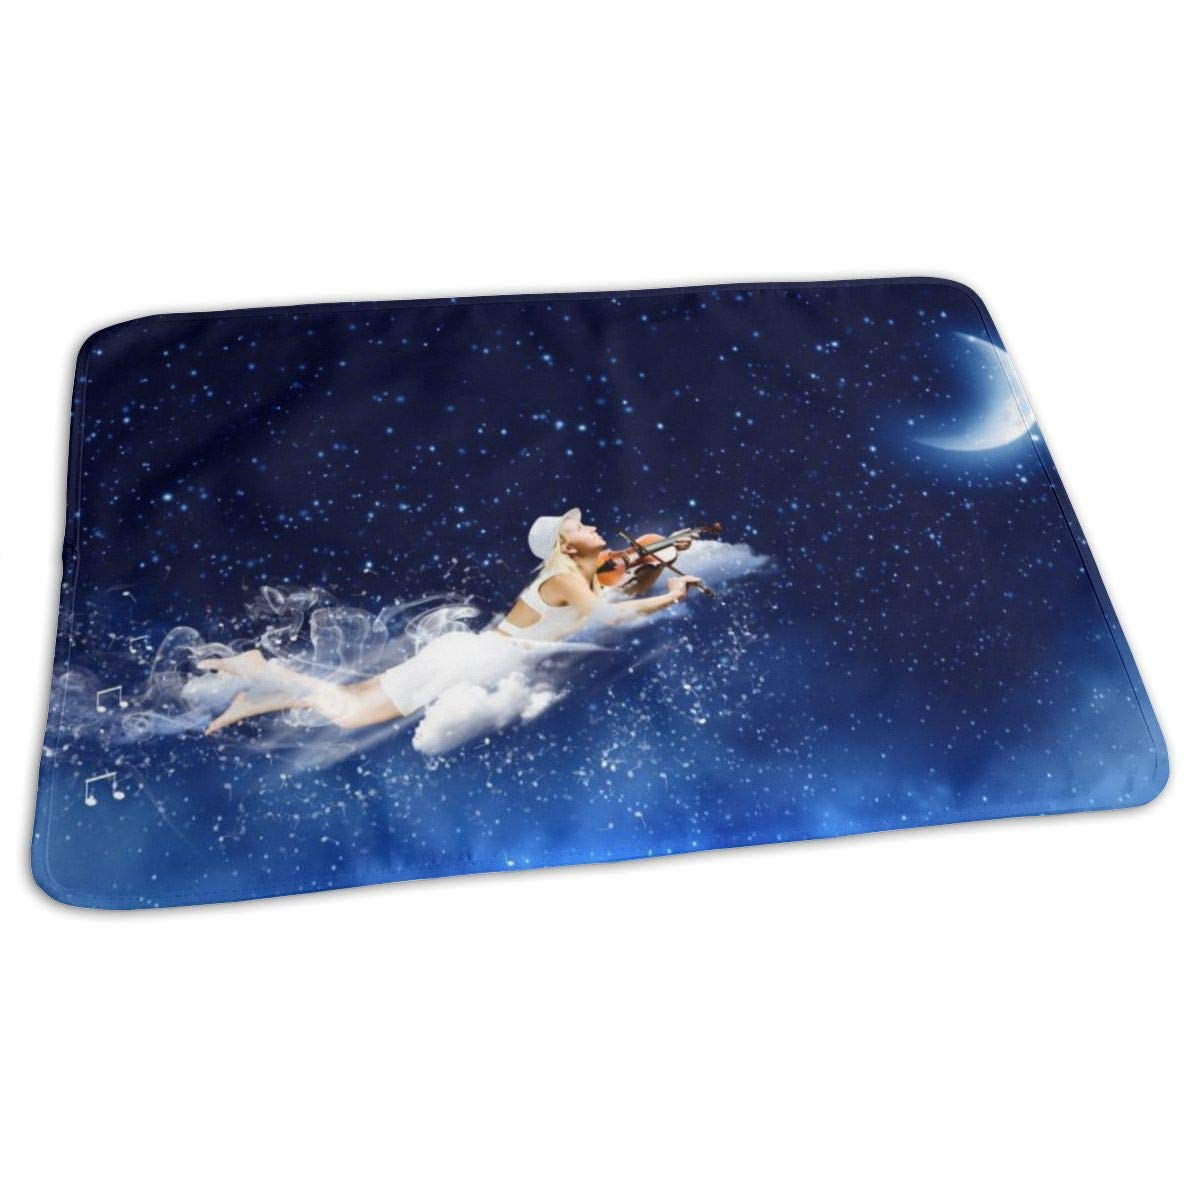 Osvbs Lovely Baby Reusable Waterproof Portable Blonde Girls Fly and Play Violin in The Night Sky Changing Pad Home Travel 27.5''x19.7'' by Osvbs